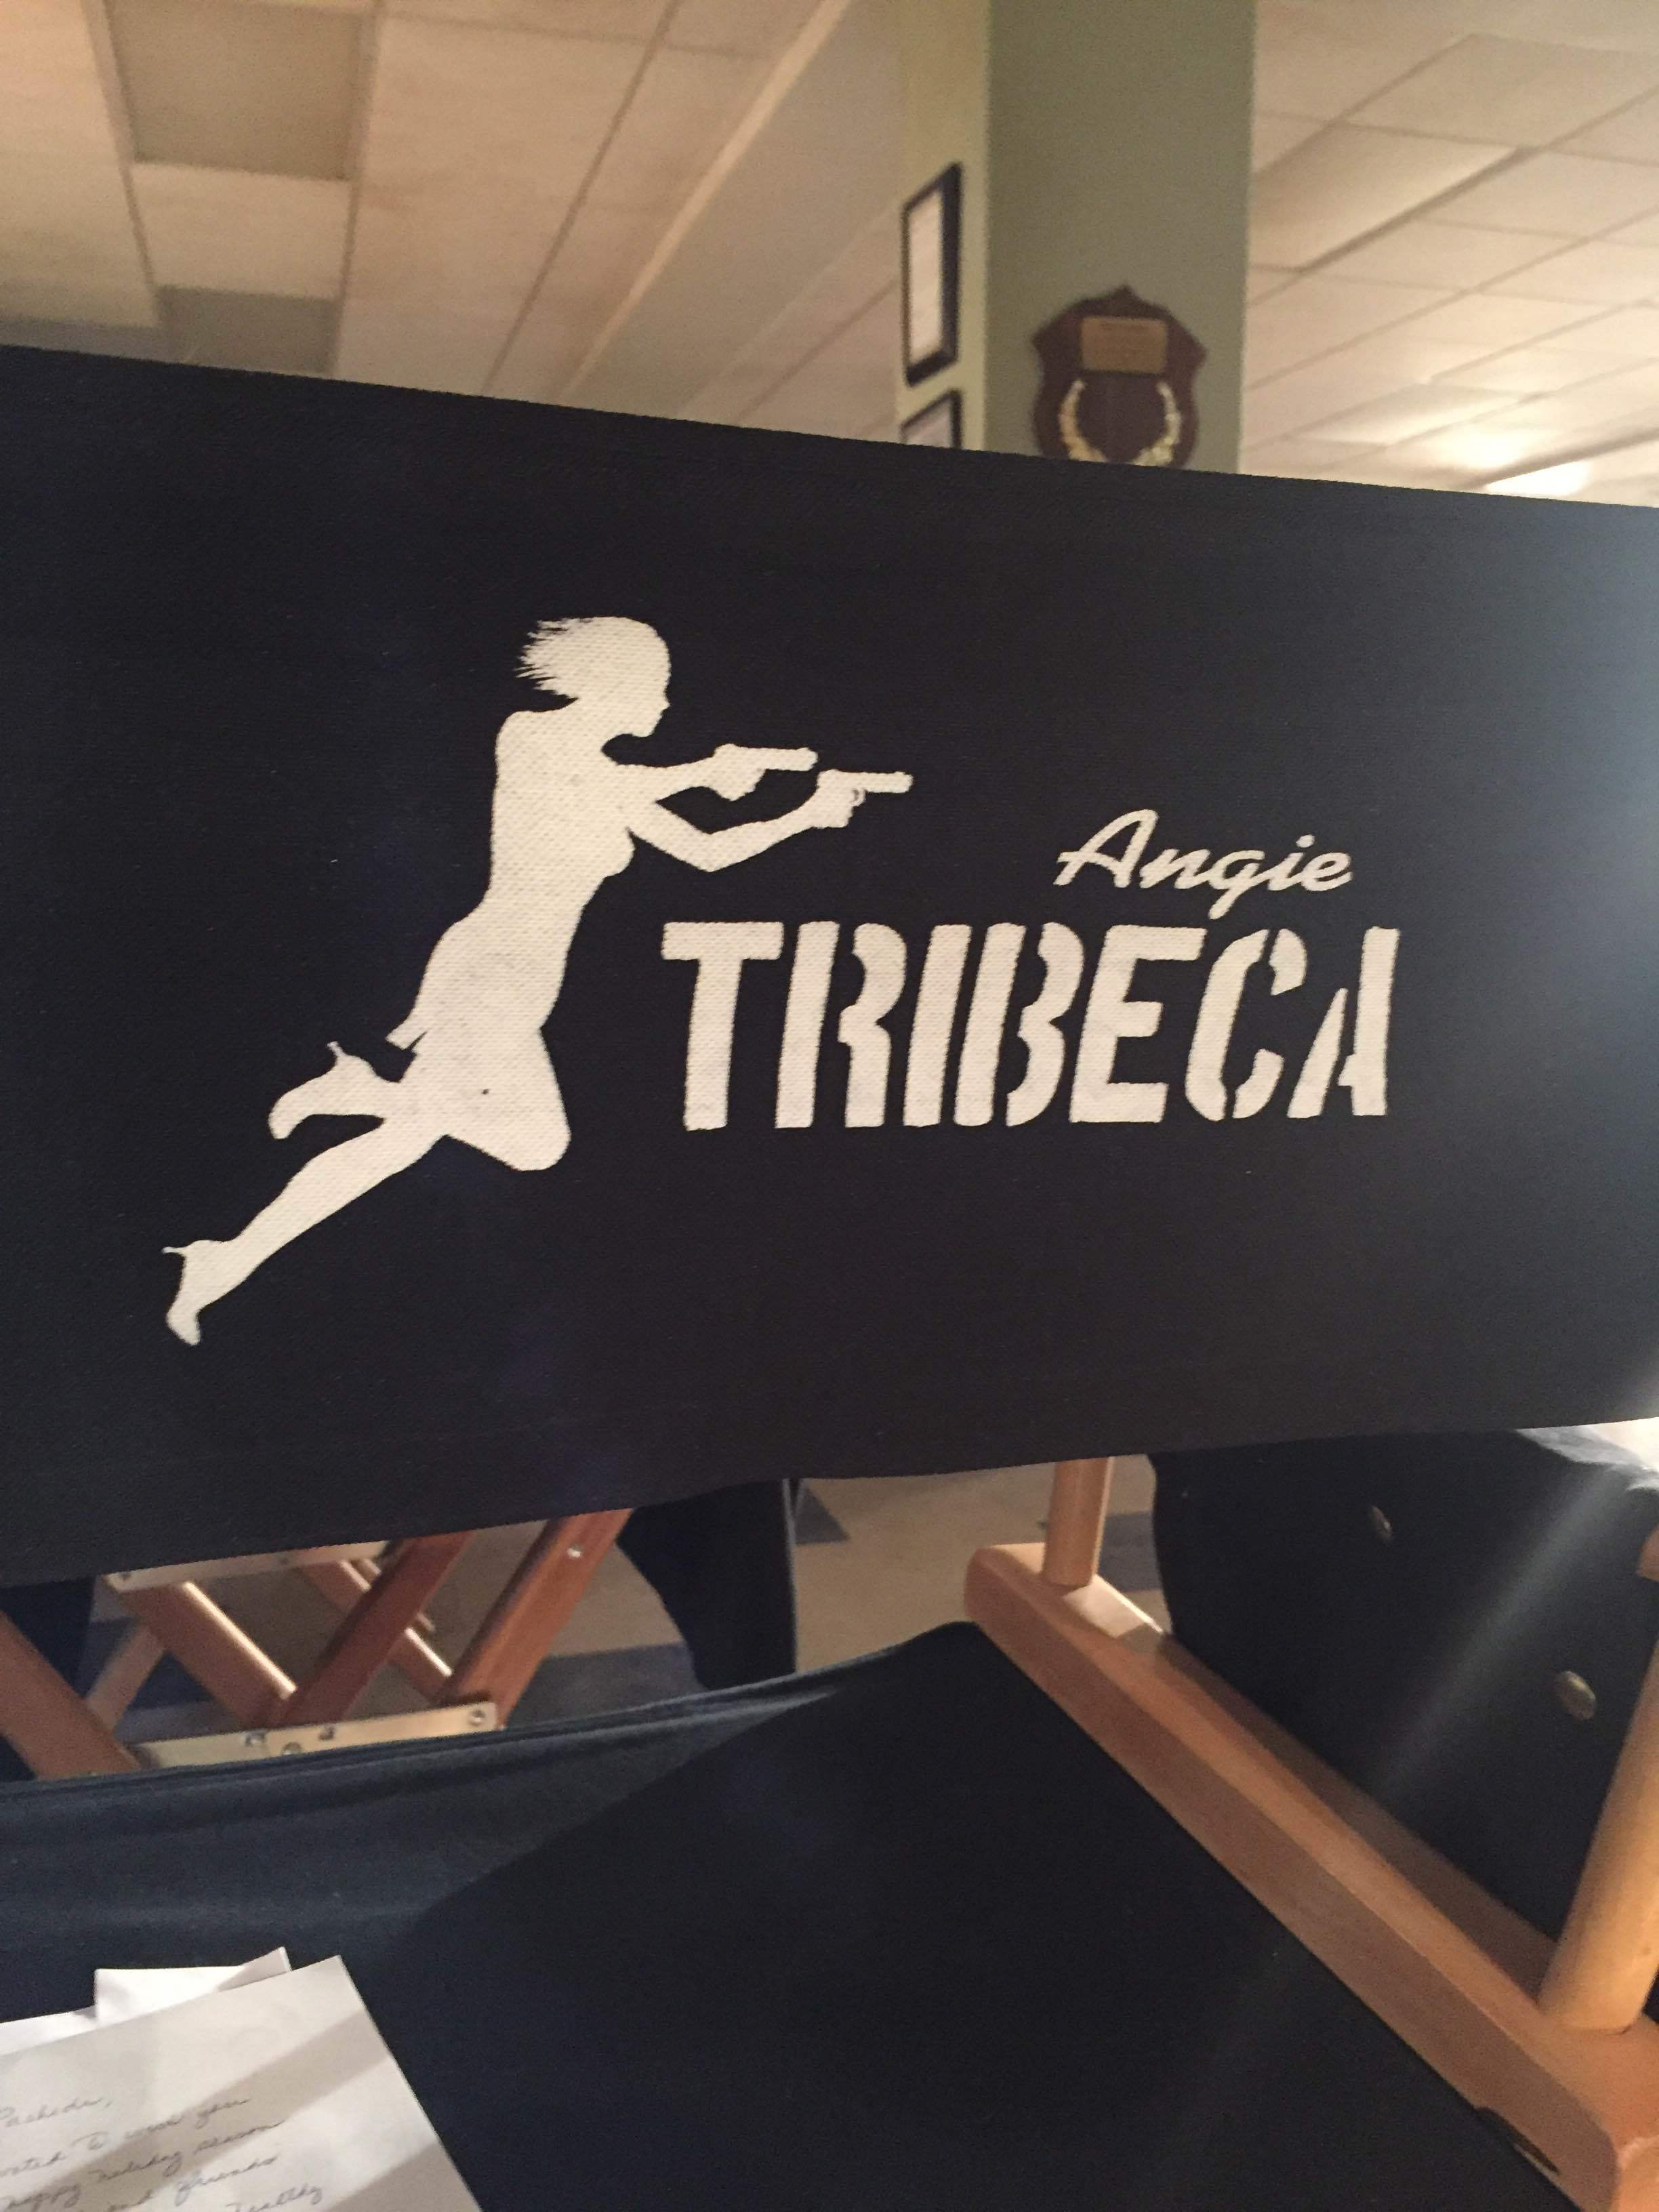 TBS new comedy Angie Tribeca...I'll make you laugh!